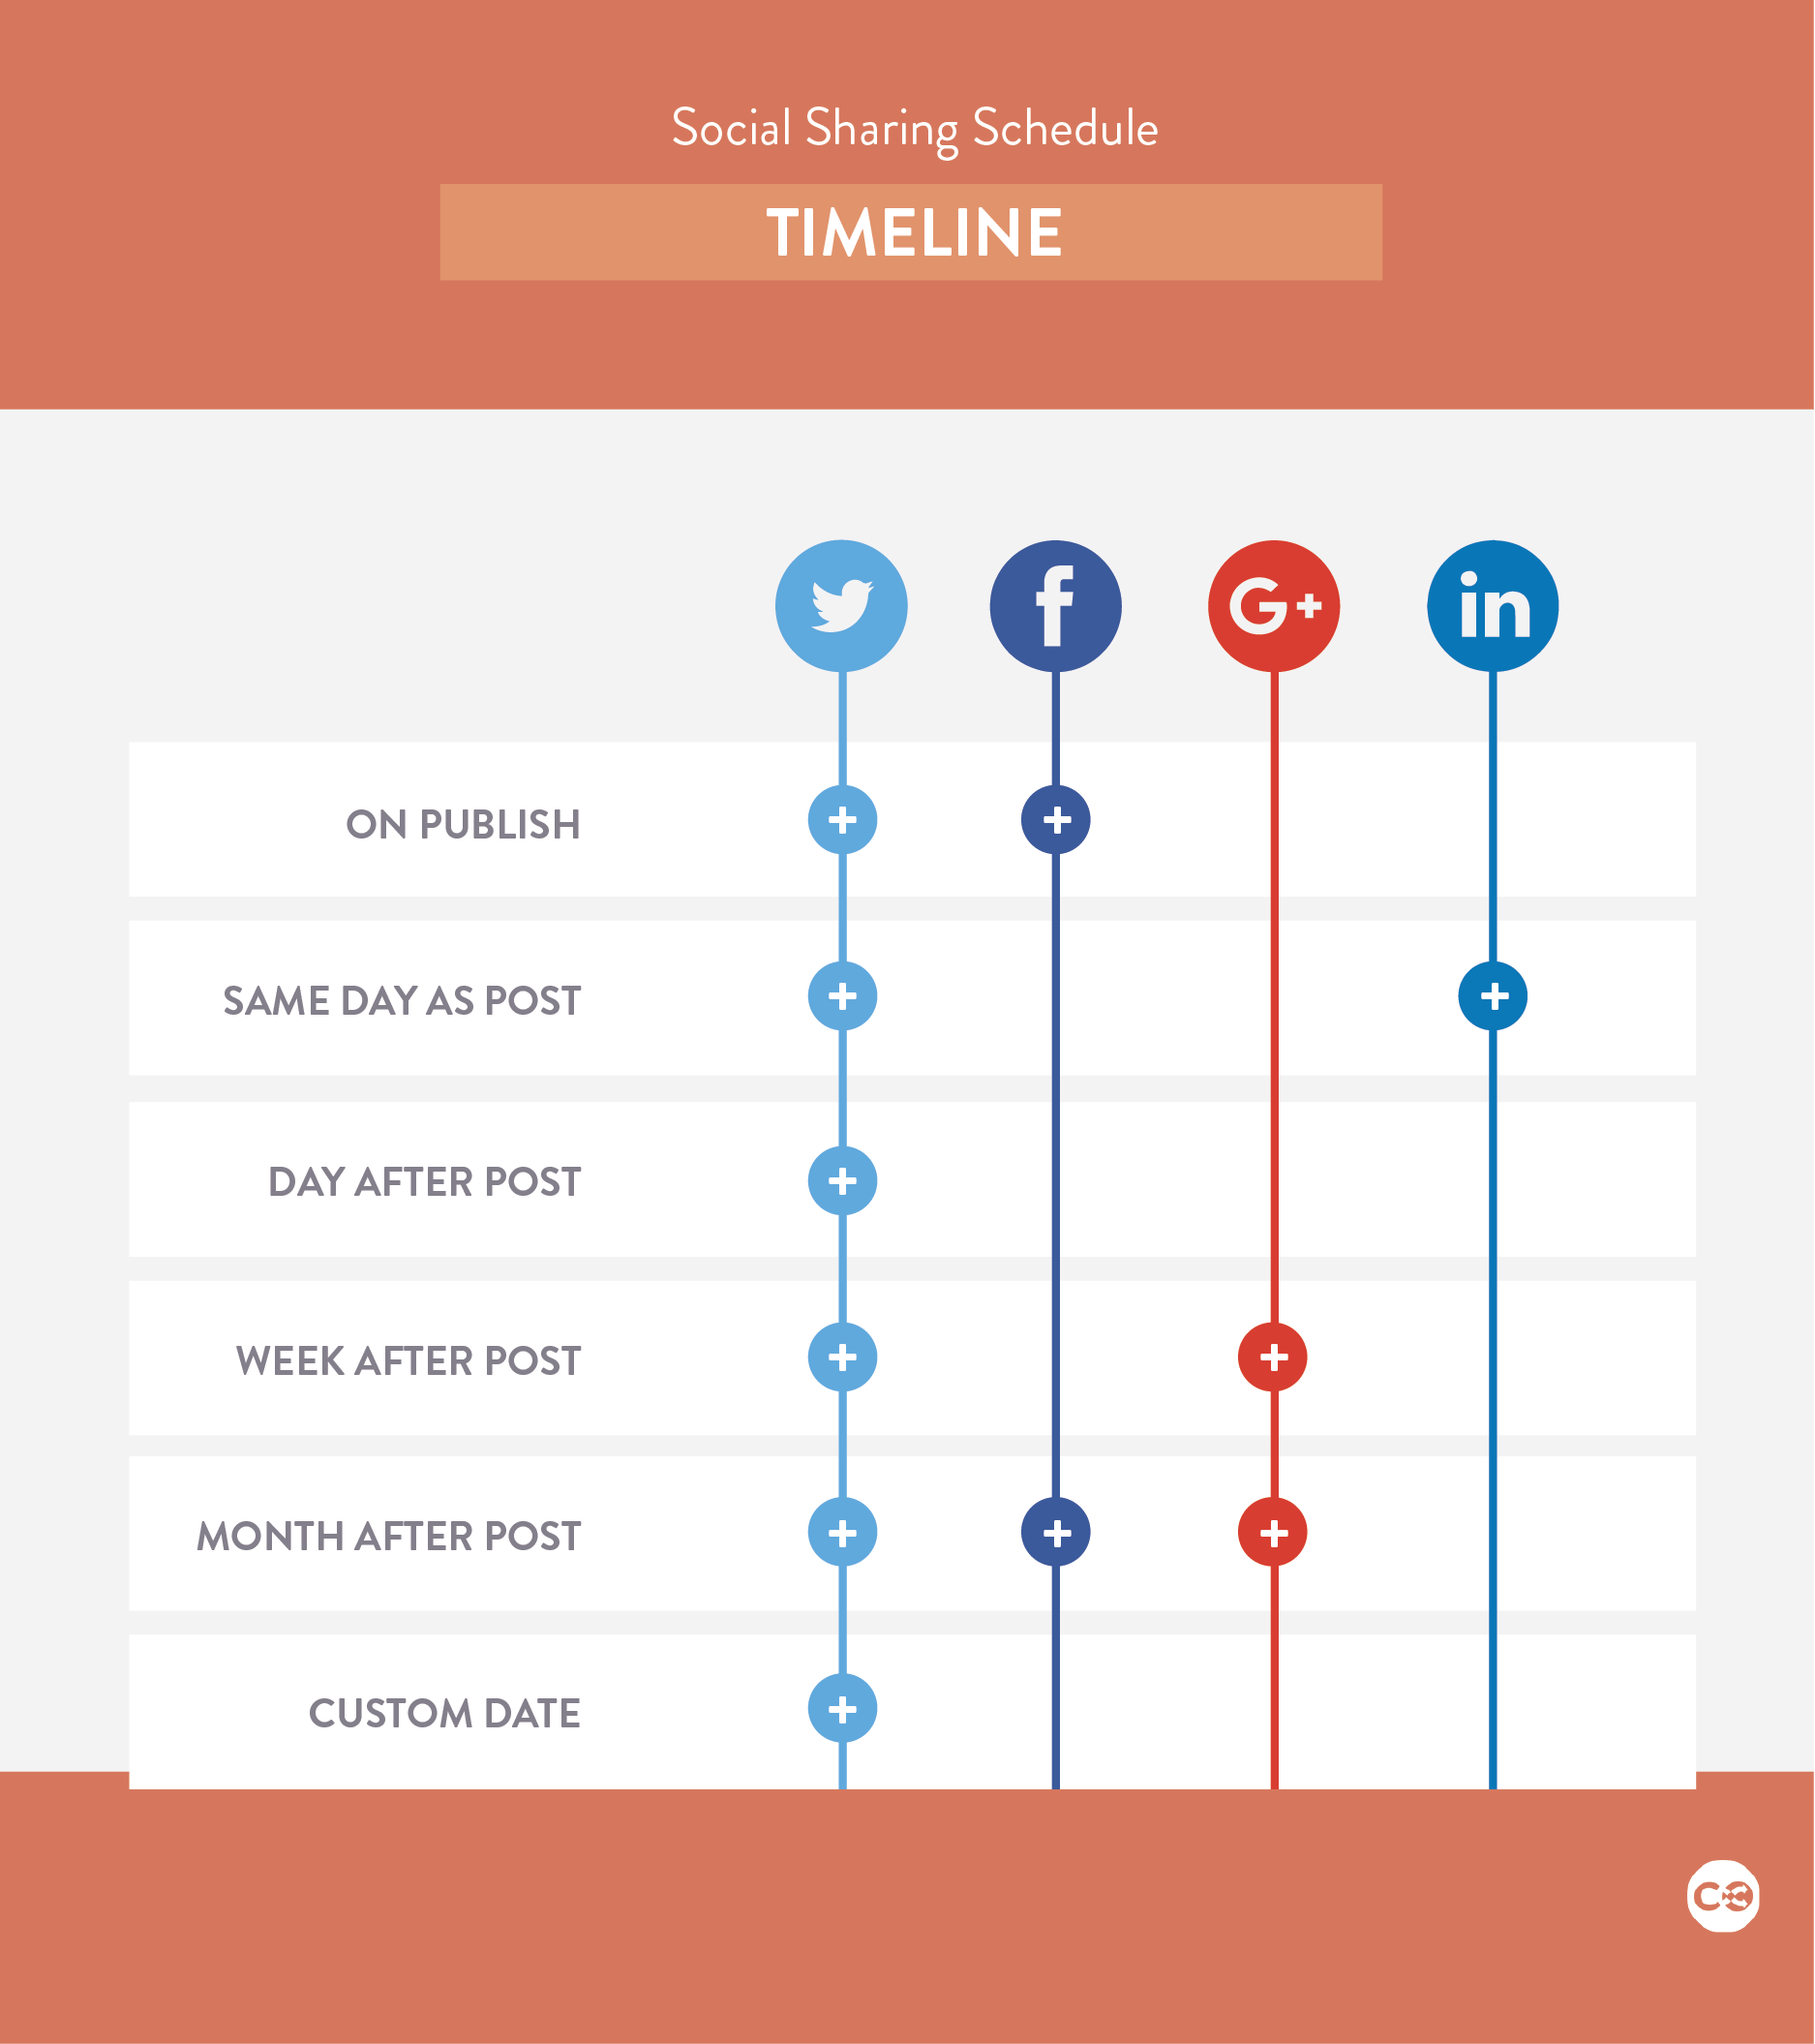 content marketing editorial calendar with social media schedule